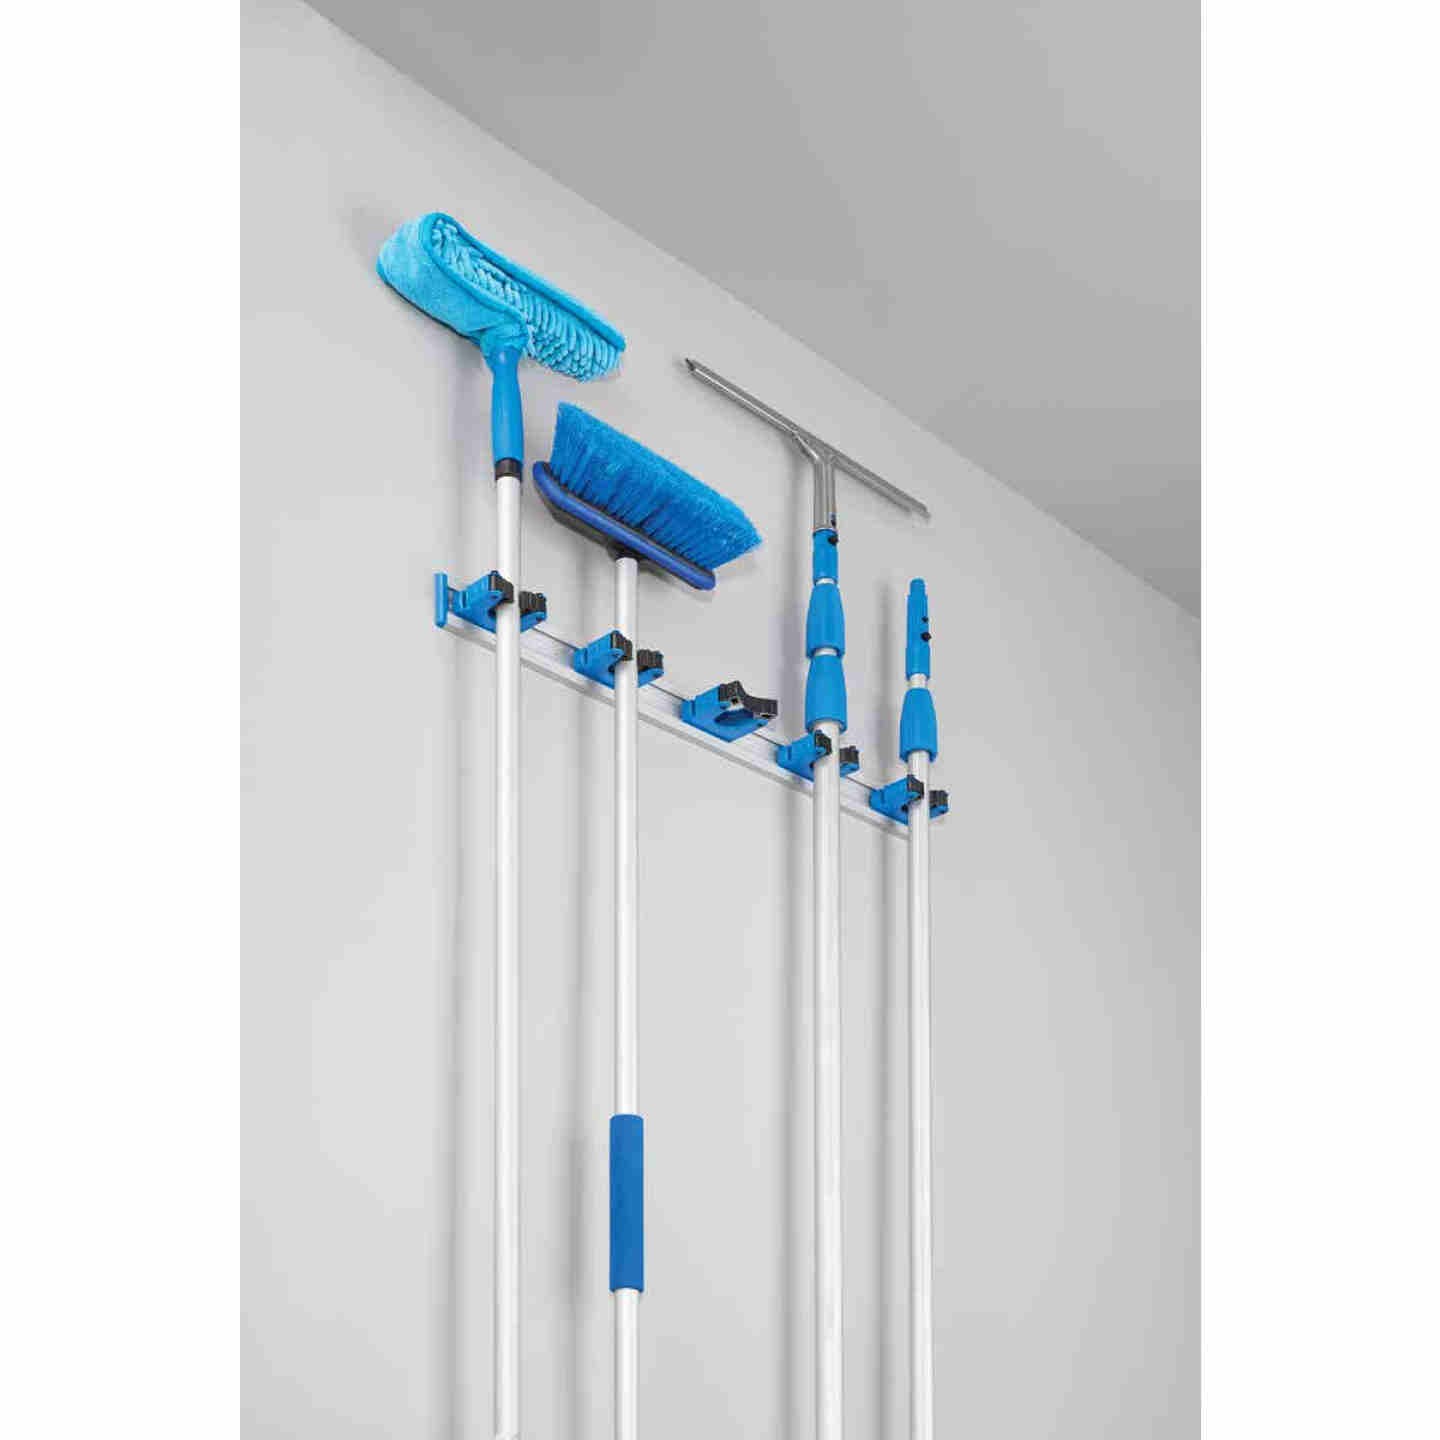 Unger 28 In. Pro Hand Held & Long Handle Tool Rack Image 3